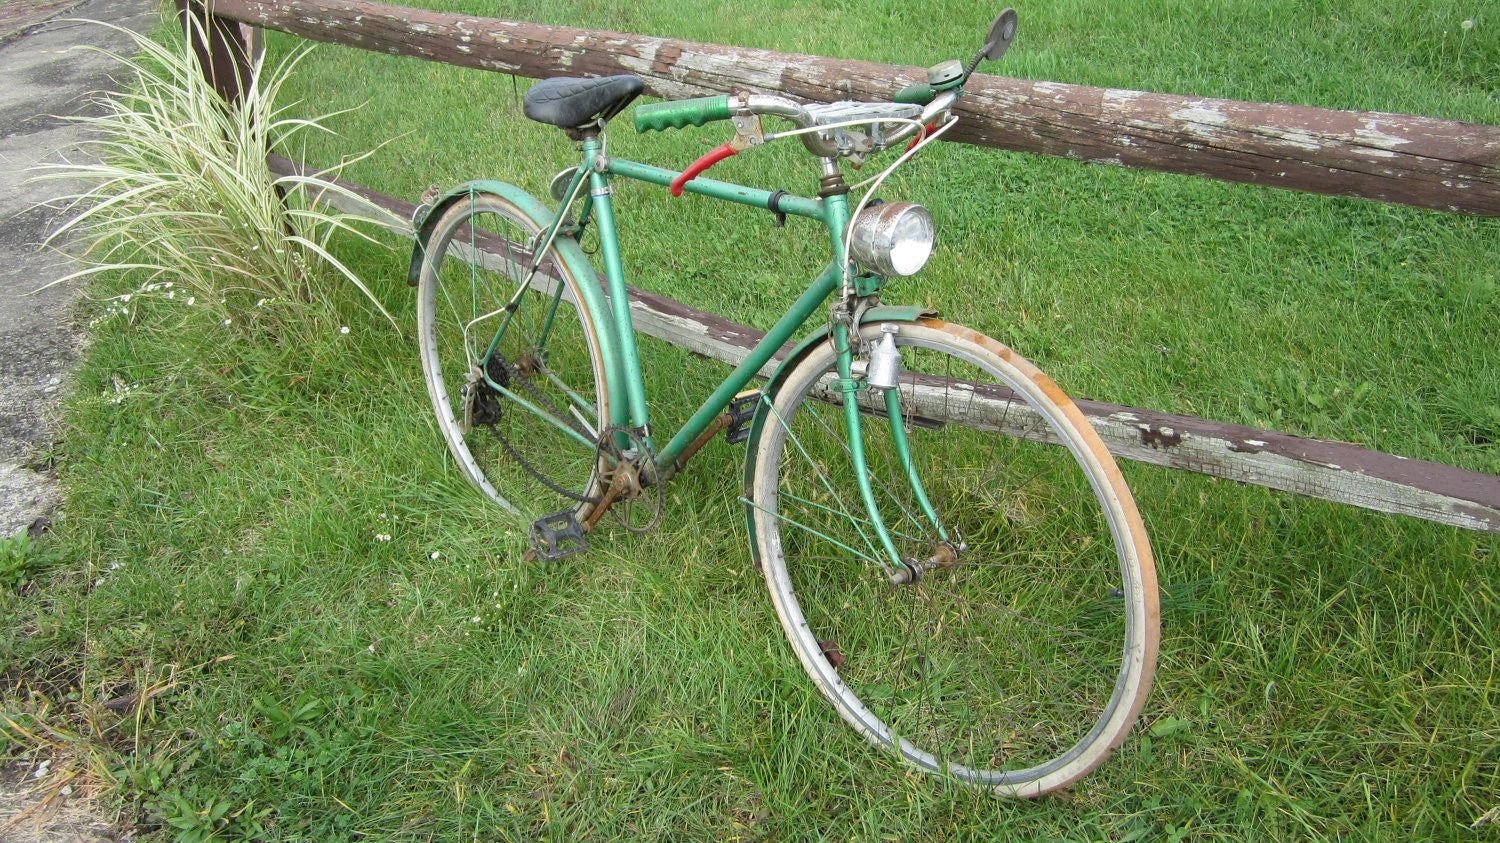 Antique Bicycle Mens Green Rusted Rusty Old Bike Country Rustic Decor Vintage Bicycle 1960s - TheOldTimeJunkShop